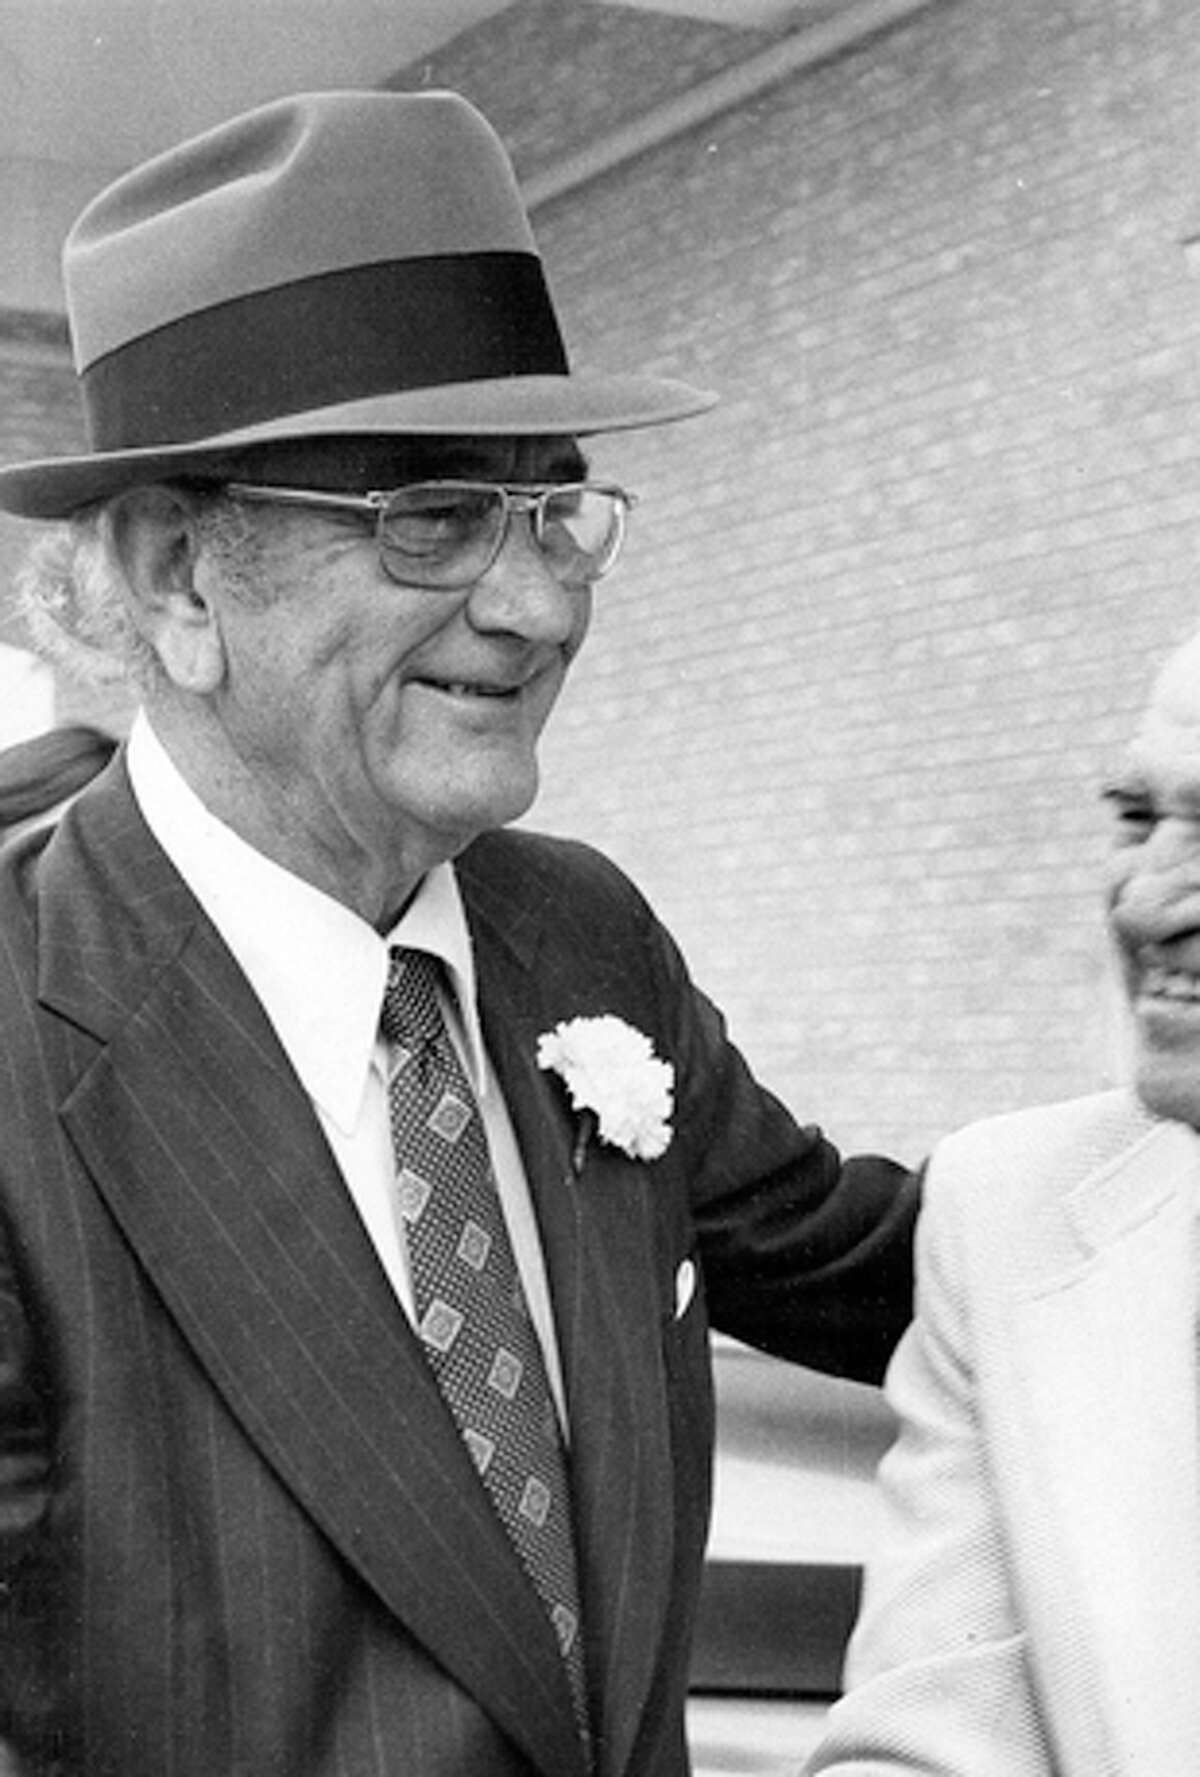 Lyndon Johnson visited San Antonio on January 16, 1973, less than a week before he died.